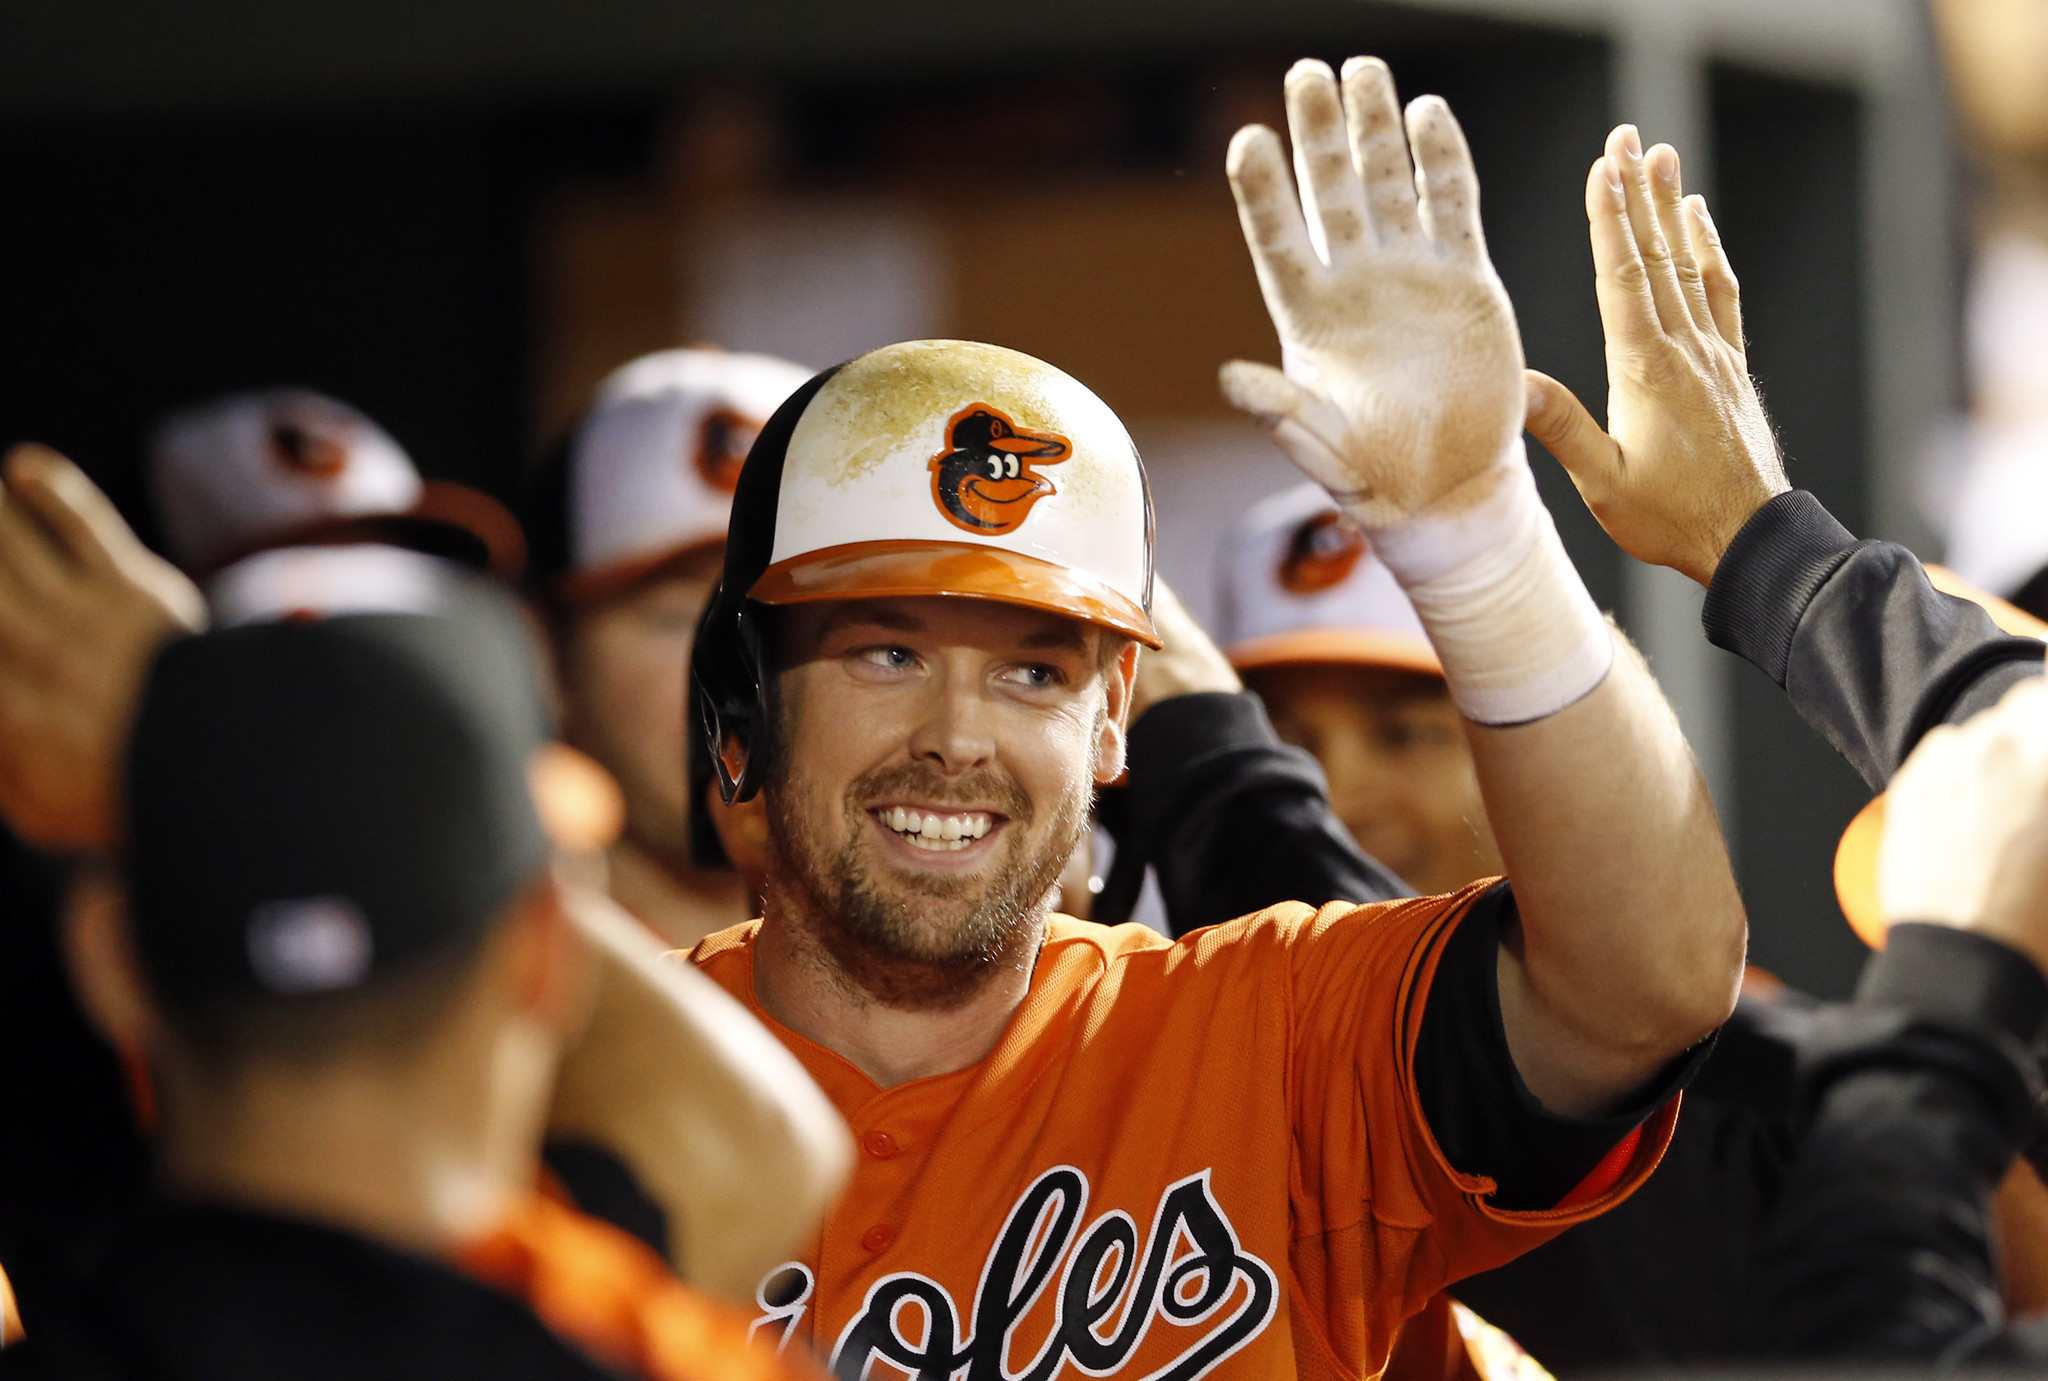 Bal-if-orioles-had-waited-around-they-probably-could-have-signed-matt-wieters-20170221